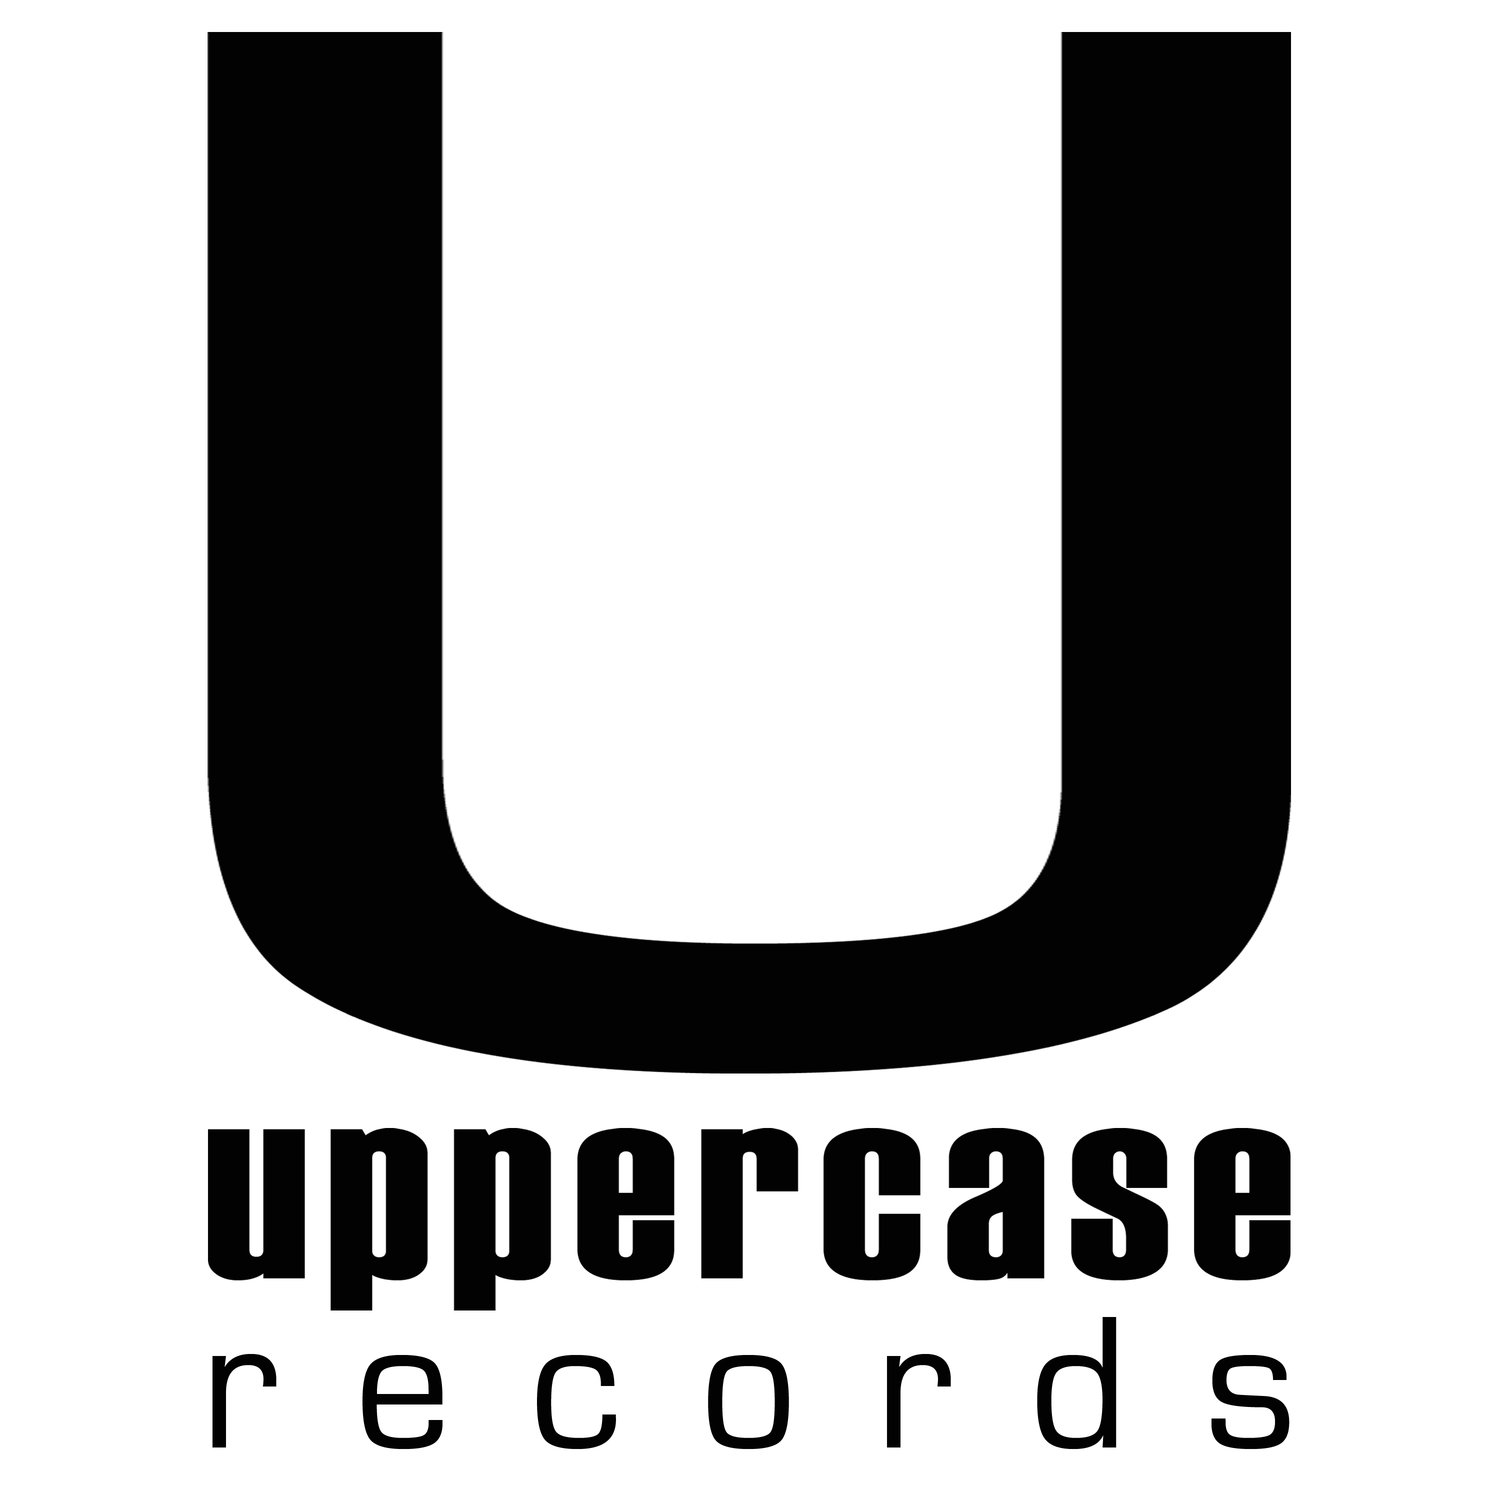 uppercase records